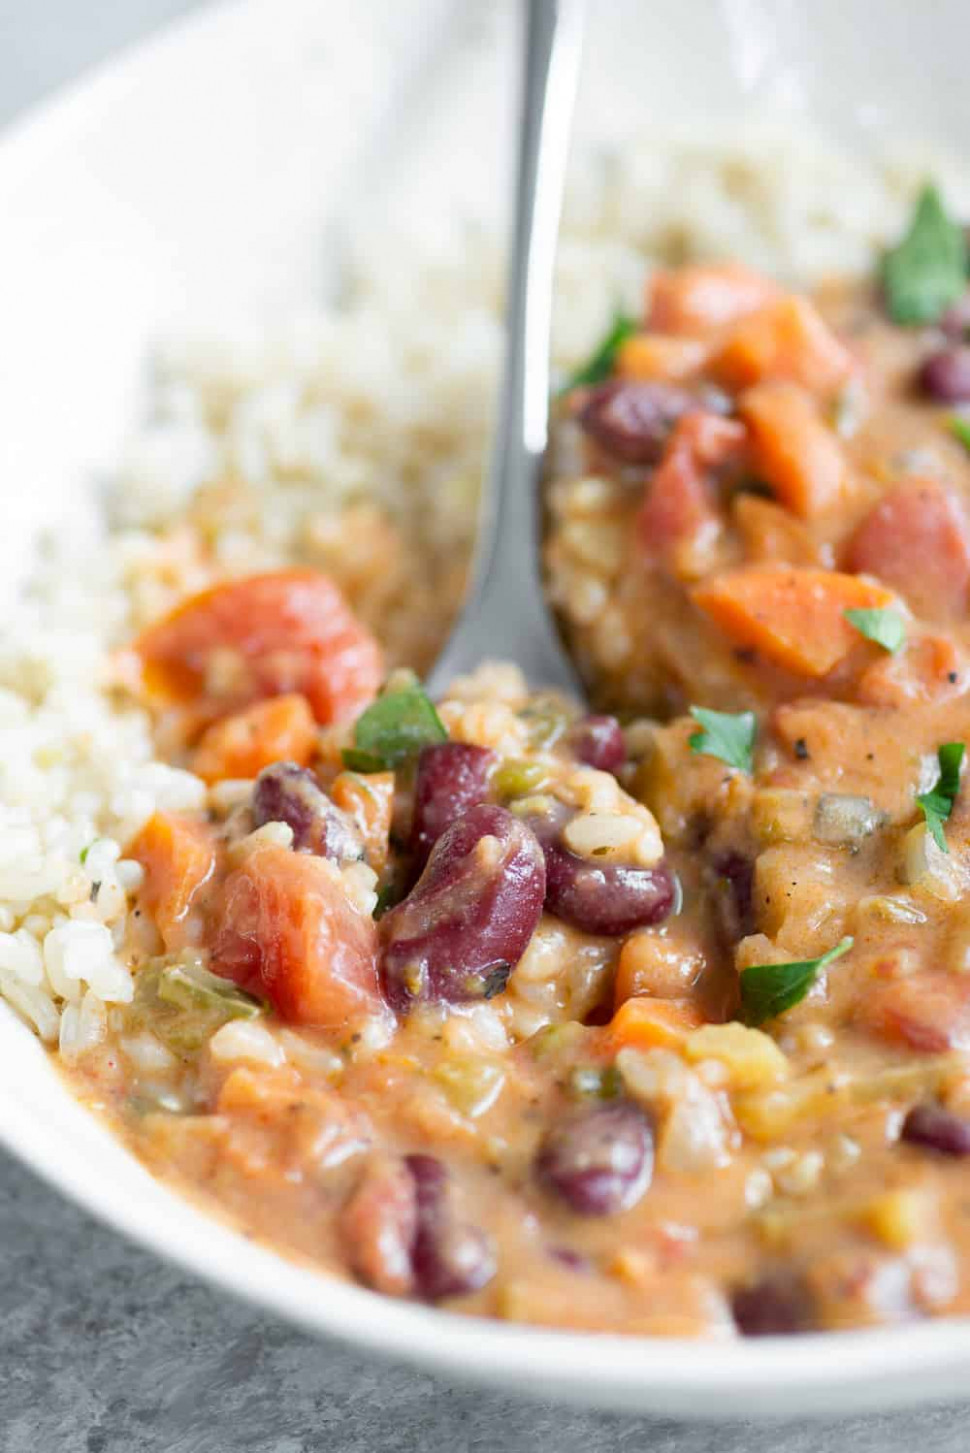 Vegan Gumbo - Delish Knowledge - Recipe Vegetarian Gumbo